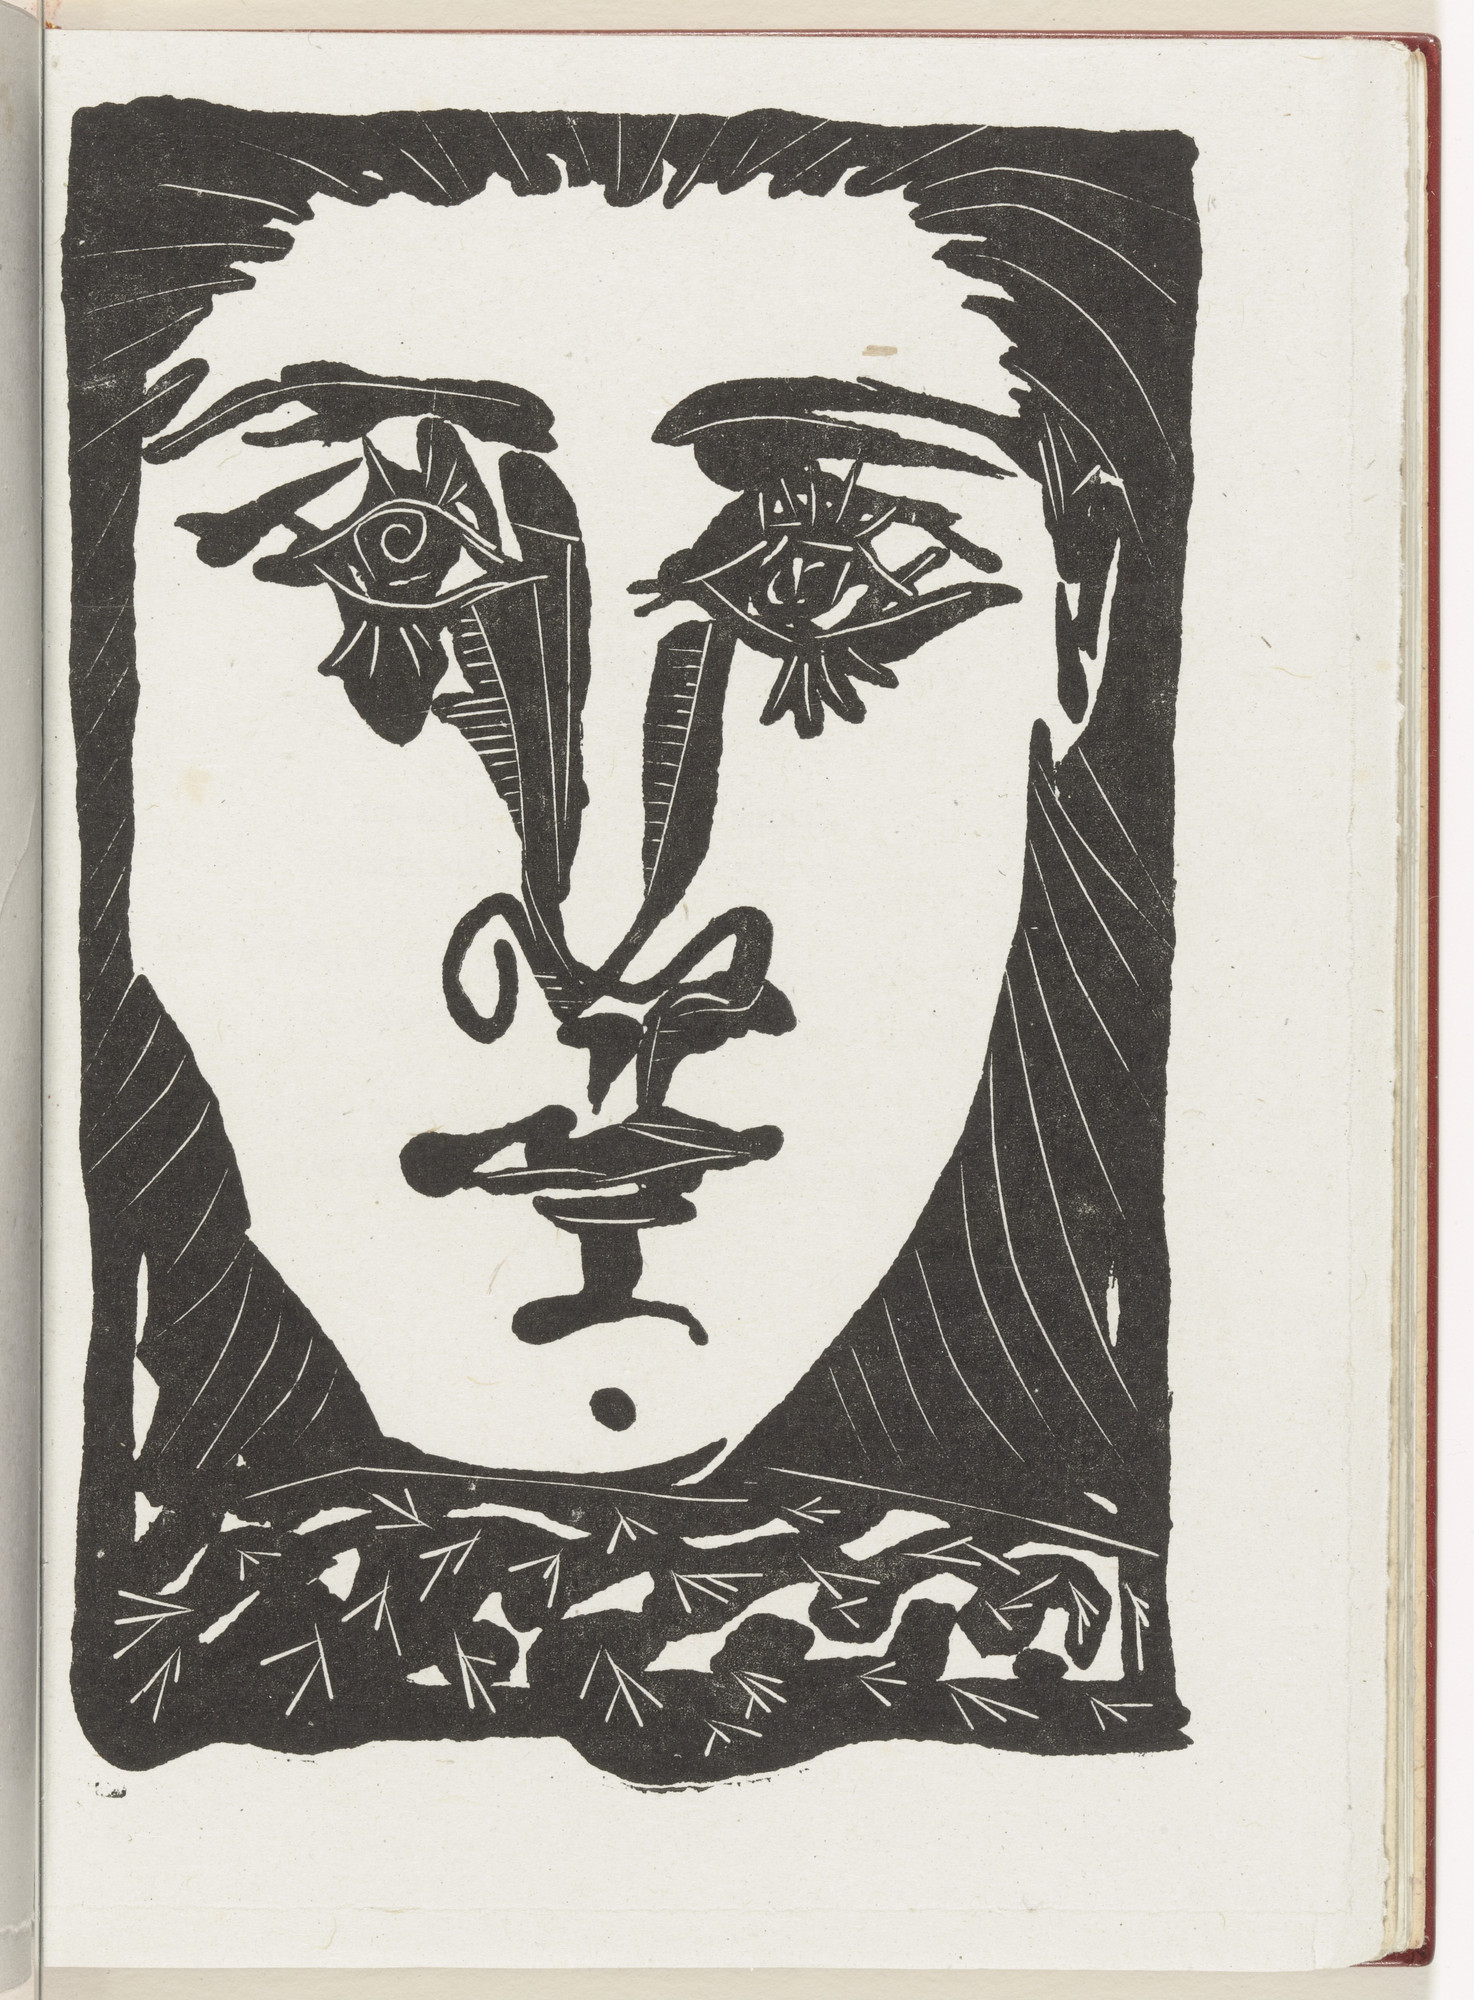 Pablo Picasso. Head (plate, page 21) from the illustrated book Non Vouloir. 1942